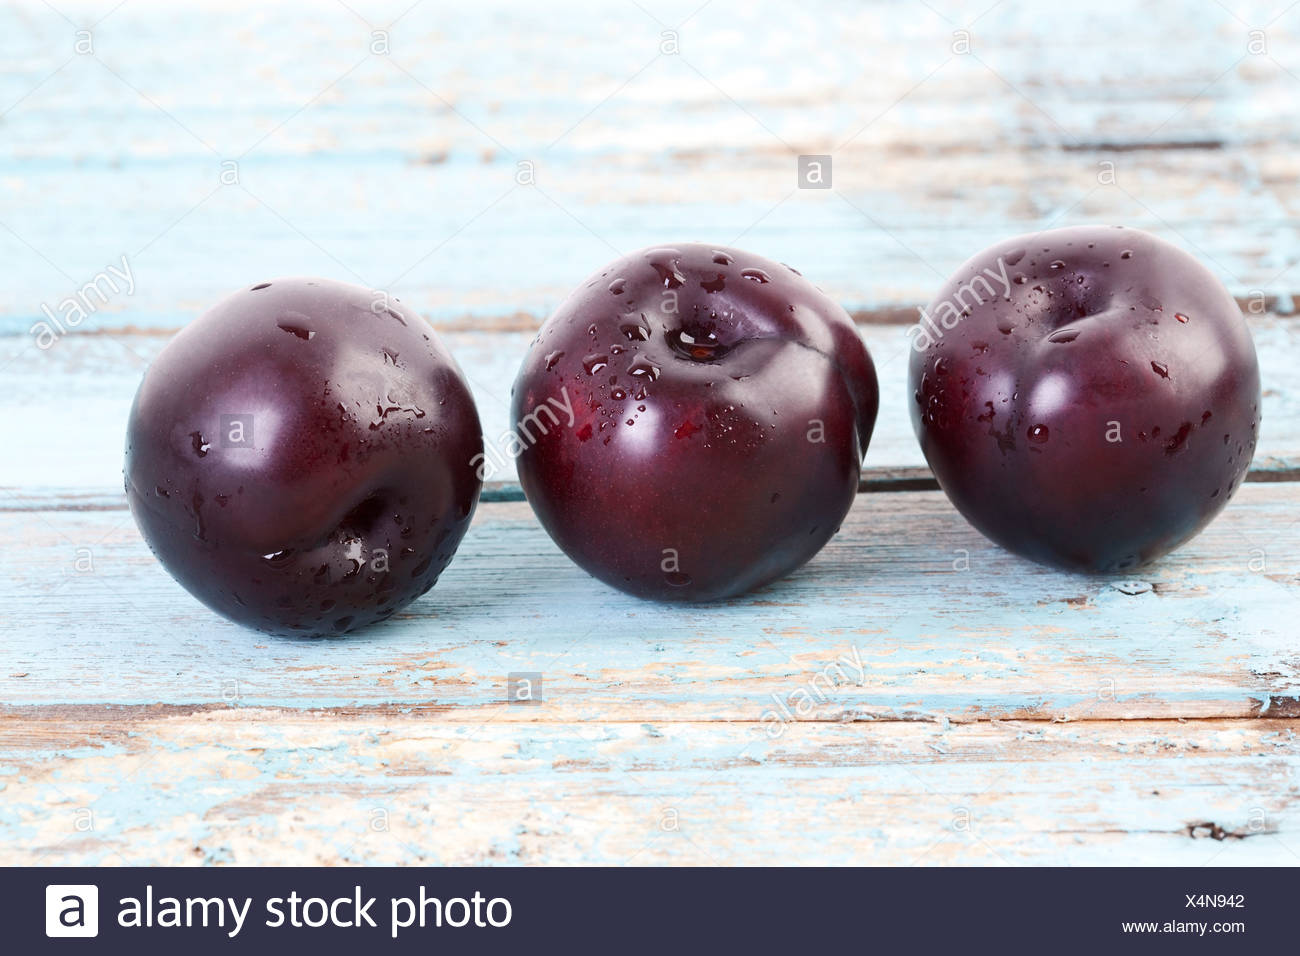 Three plums on wooden table, close up - Stock Image